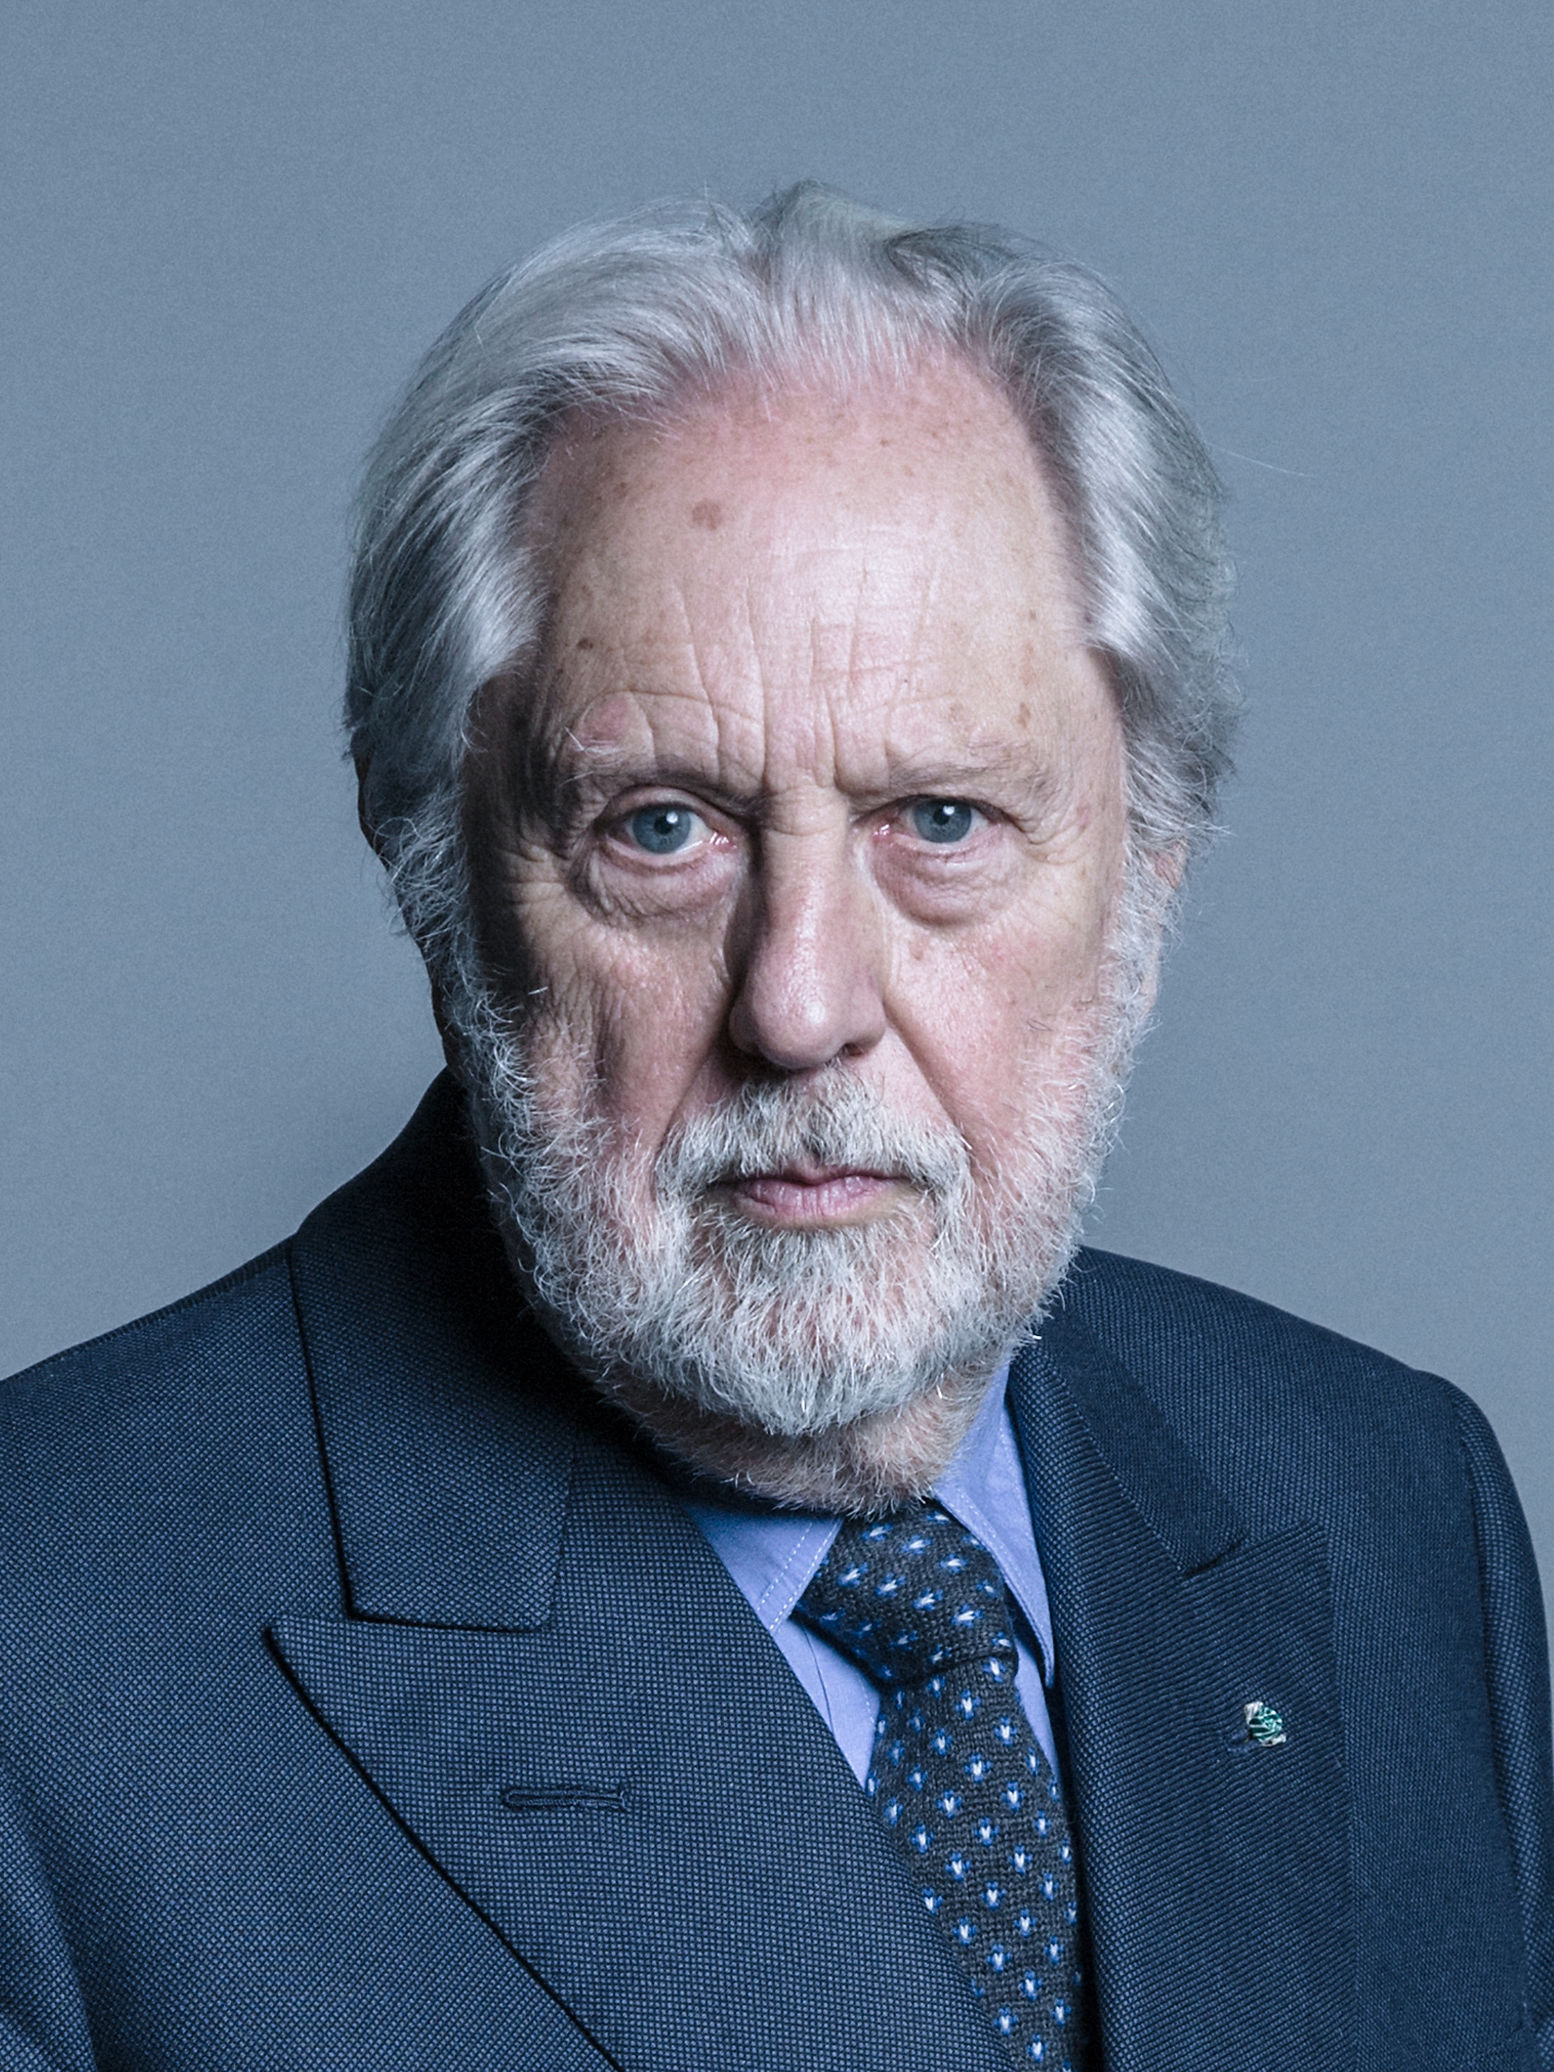 Lord Puttnam's official parliamentary photo